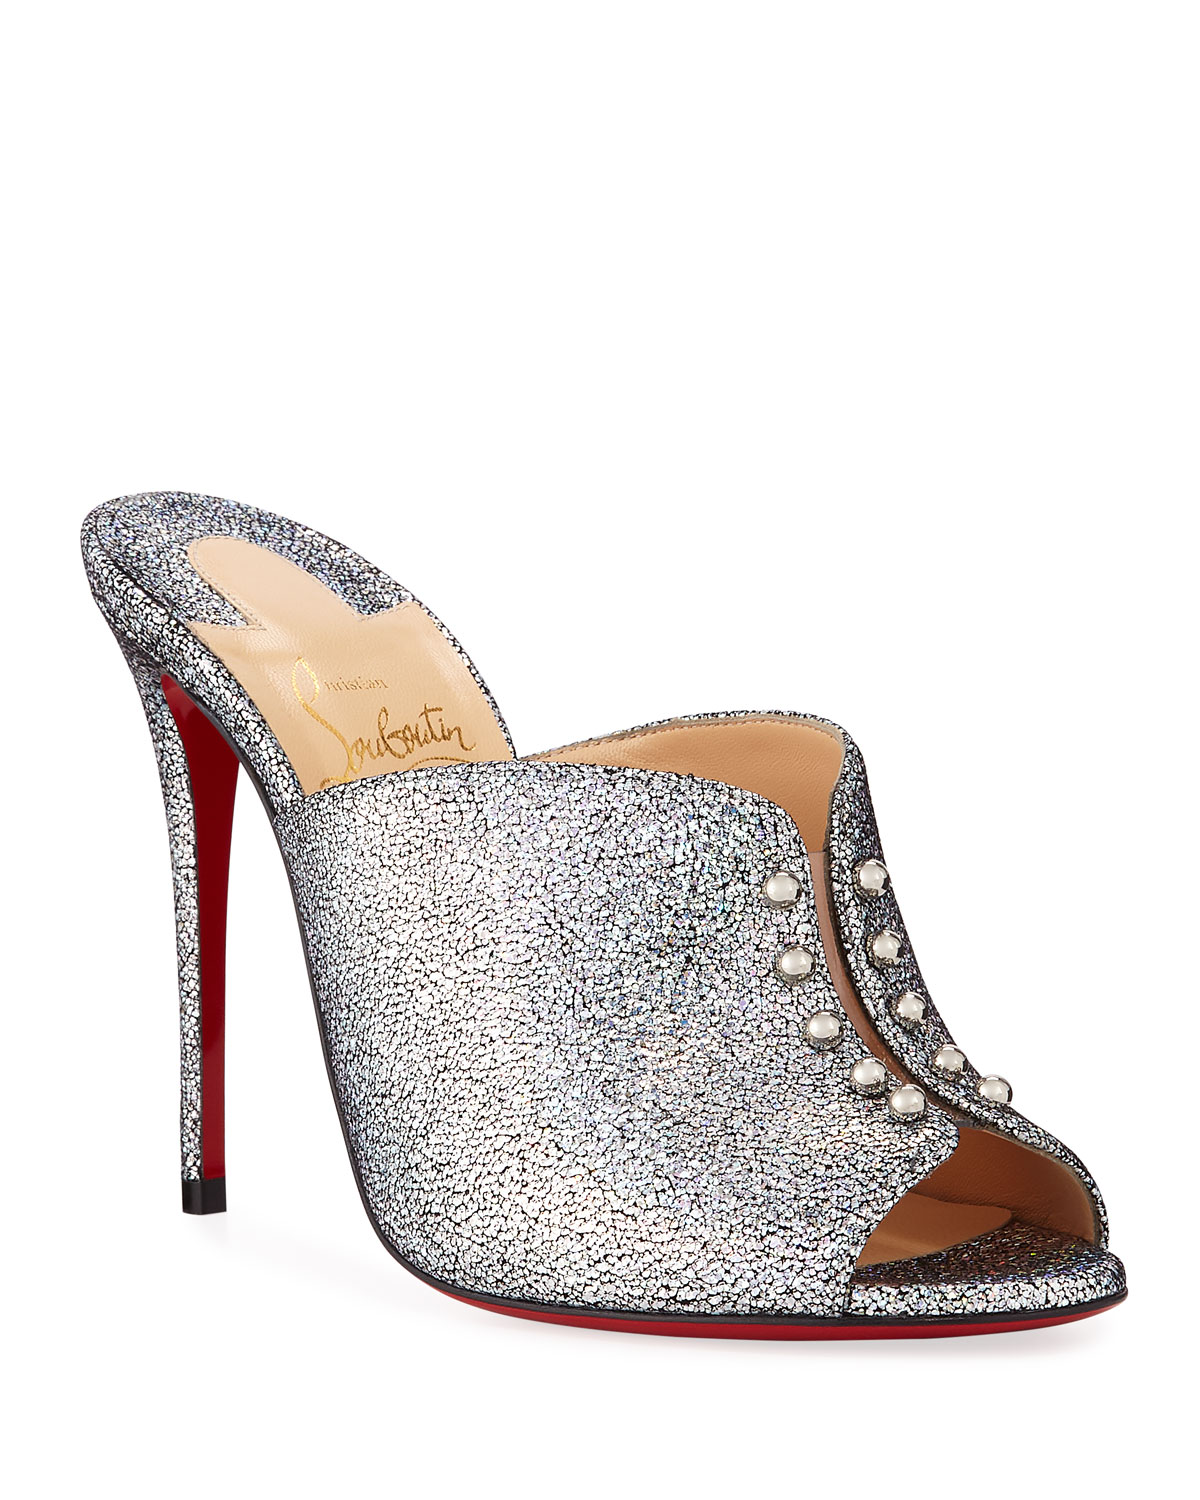 cd89c096d5c Predumule Chunky Glitter Red Sole Mules